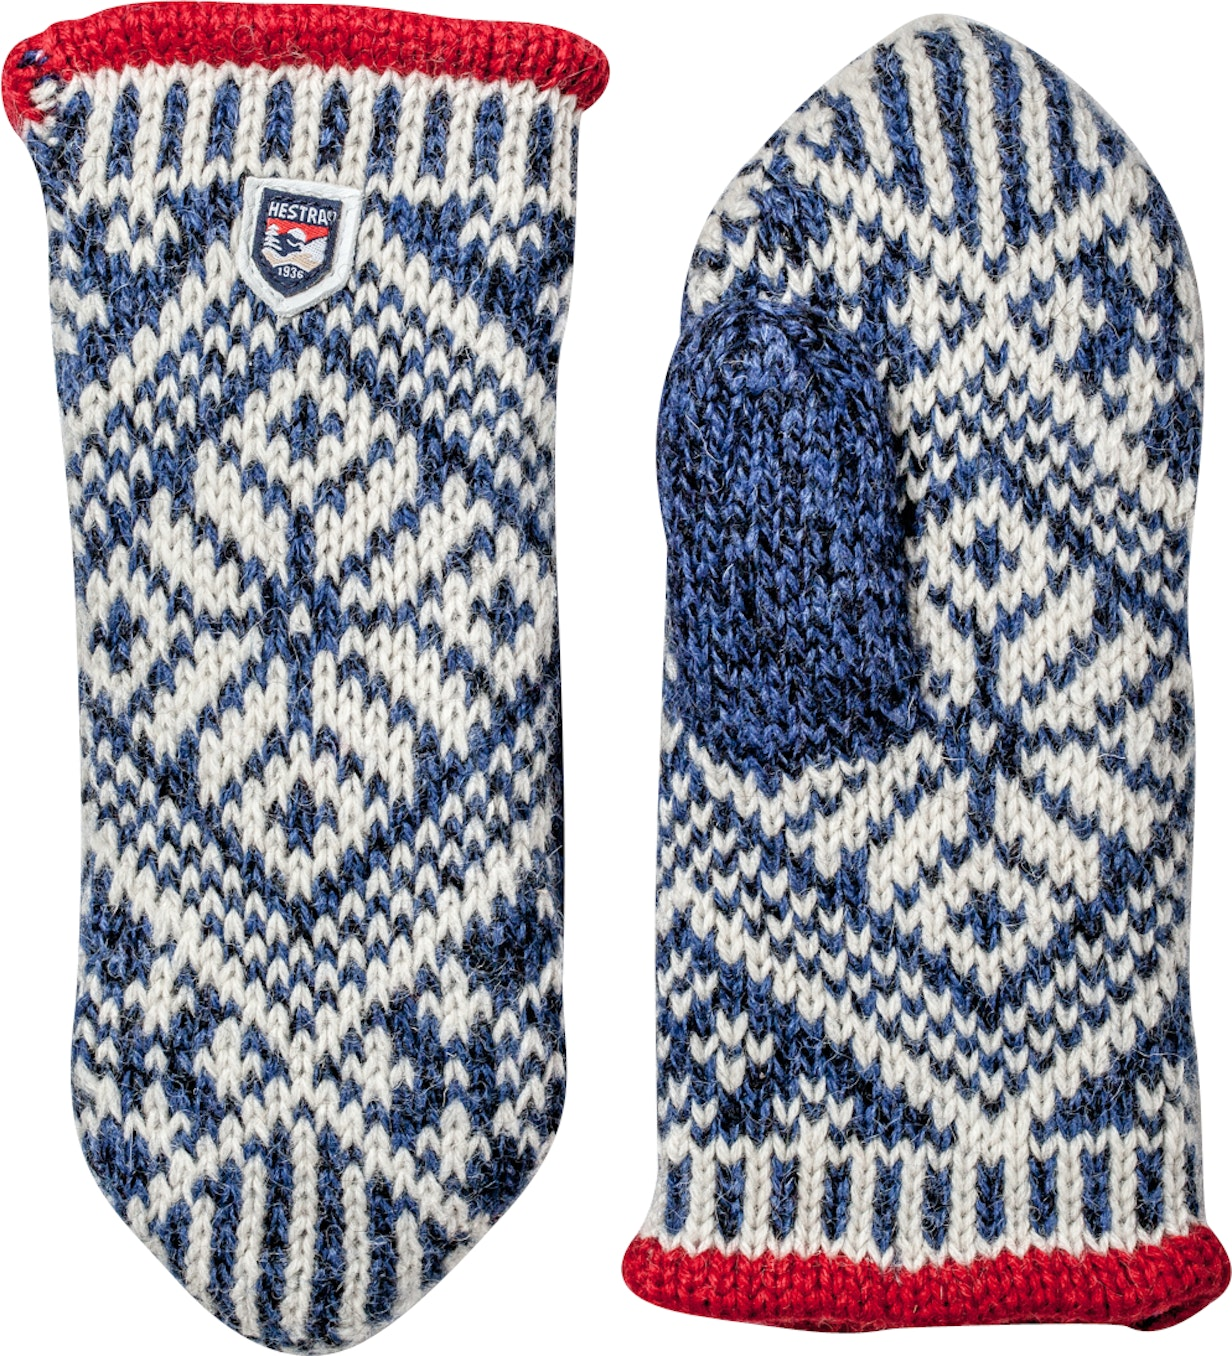 Product image for 63921 Nordic Wool Mitt